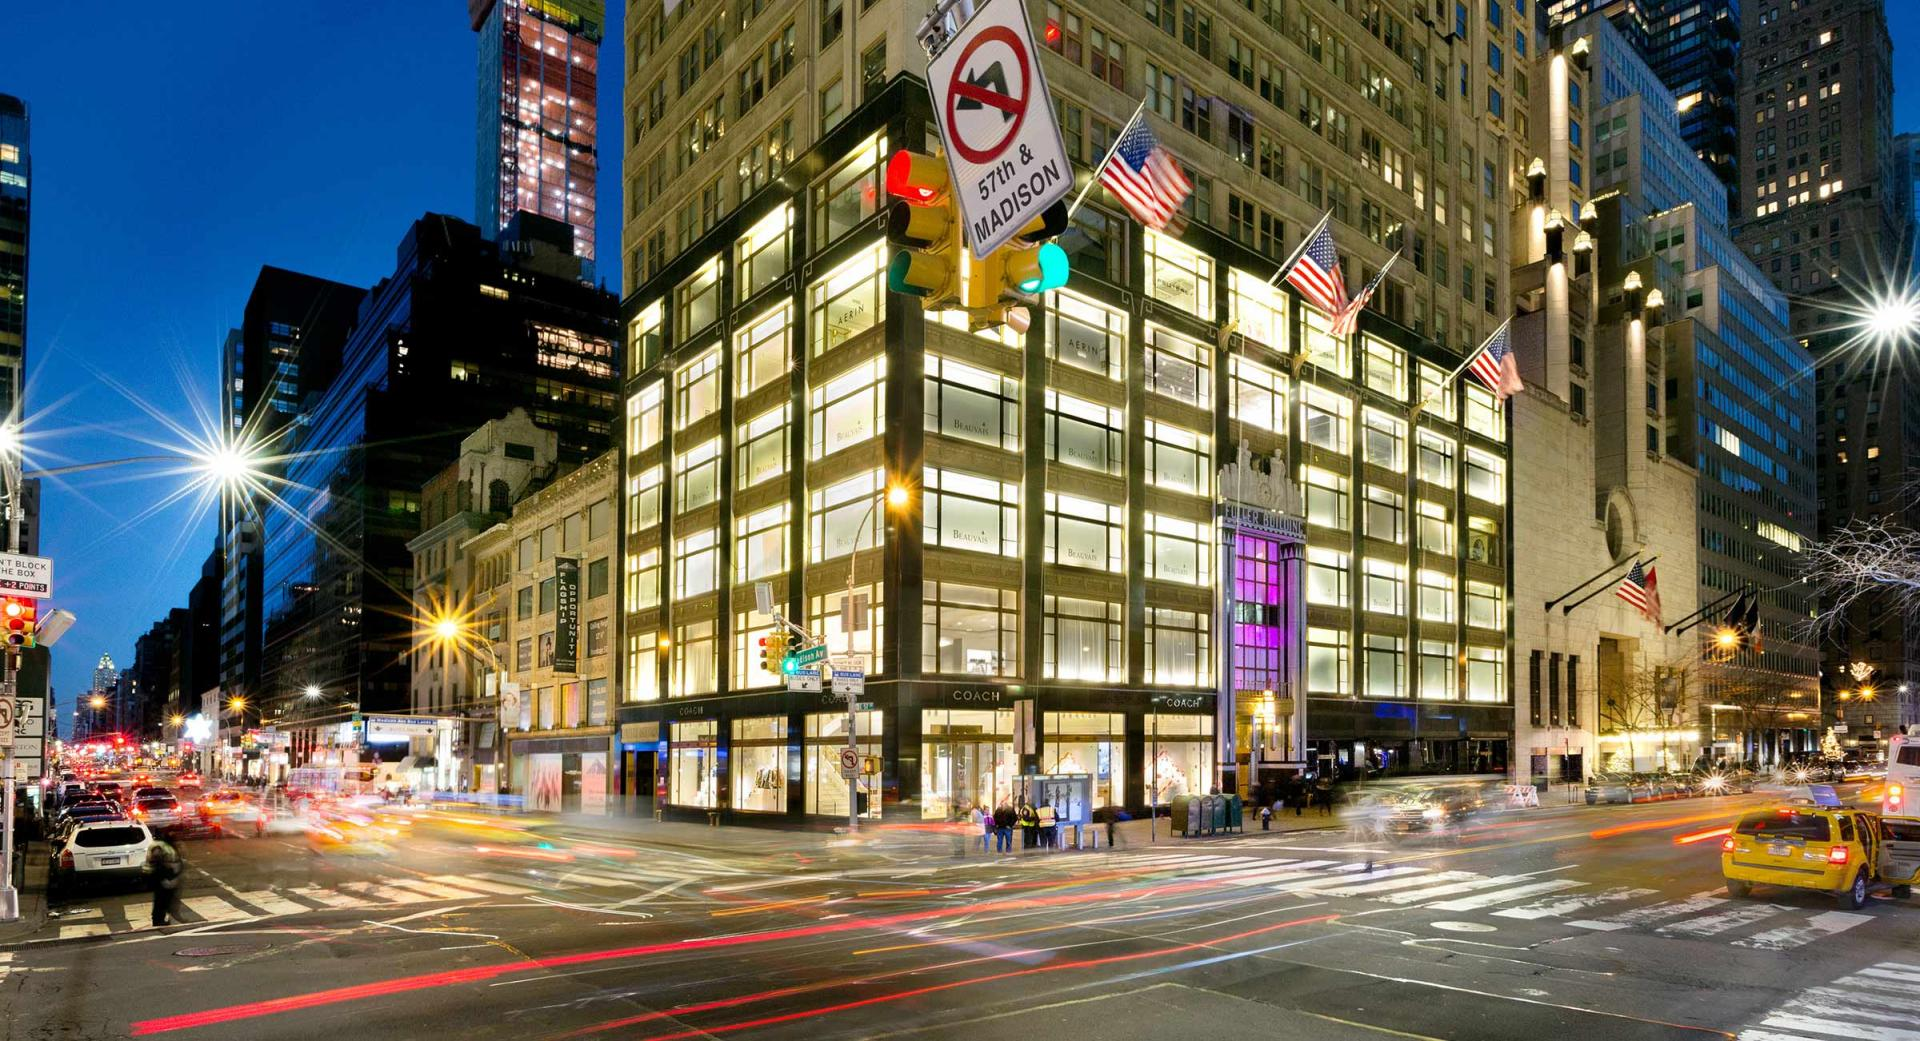 Corner of 57th and Madison Avenue - NYC used on the website to set location for Dankner Milstein Lawfirm located in the Fuller Building - architectural exterior evening photograph : Miscellanous Projects : New York NY Architectural Photographer | Interior and Exterior